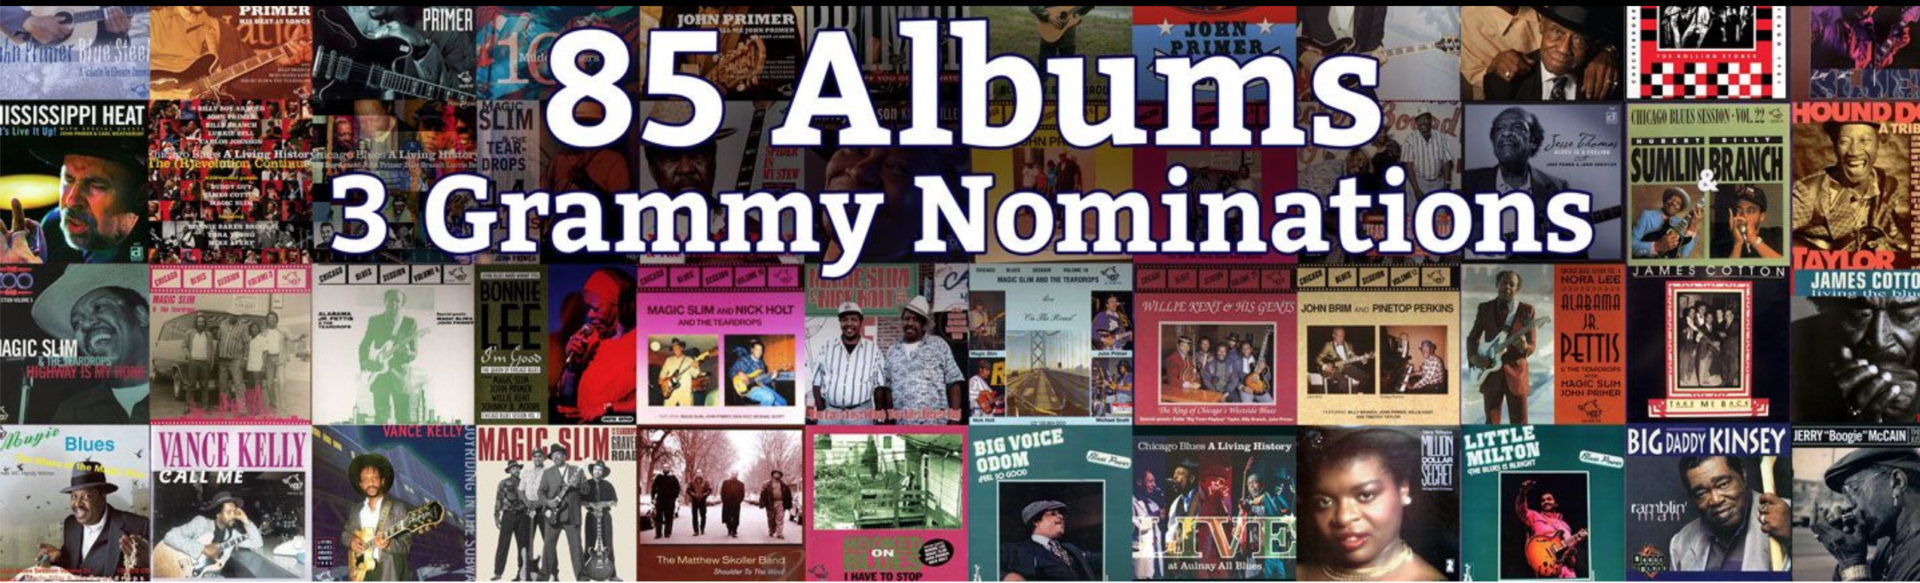 image of banner saying john primer has 85 albums and 3 grammy nominations